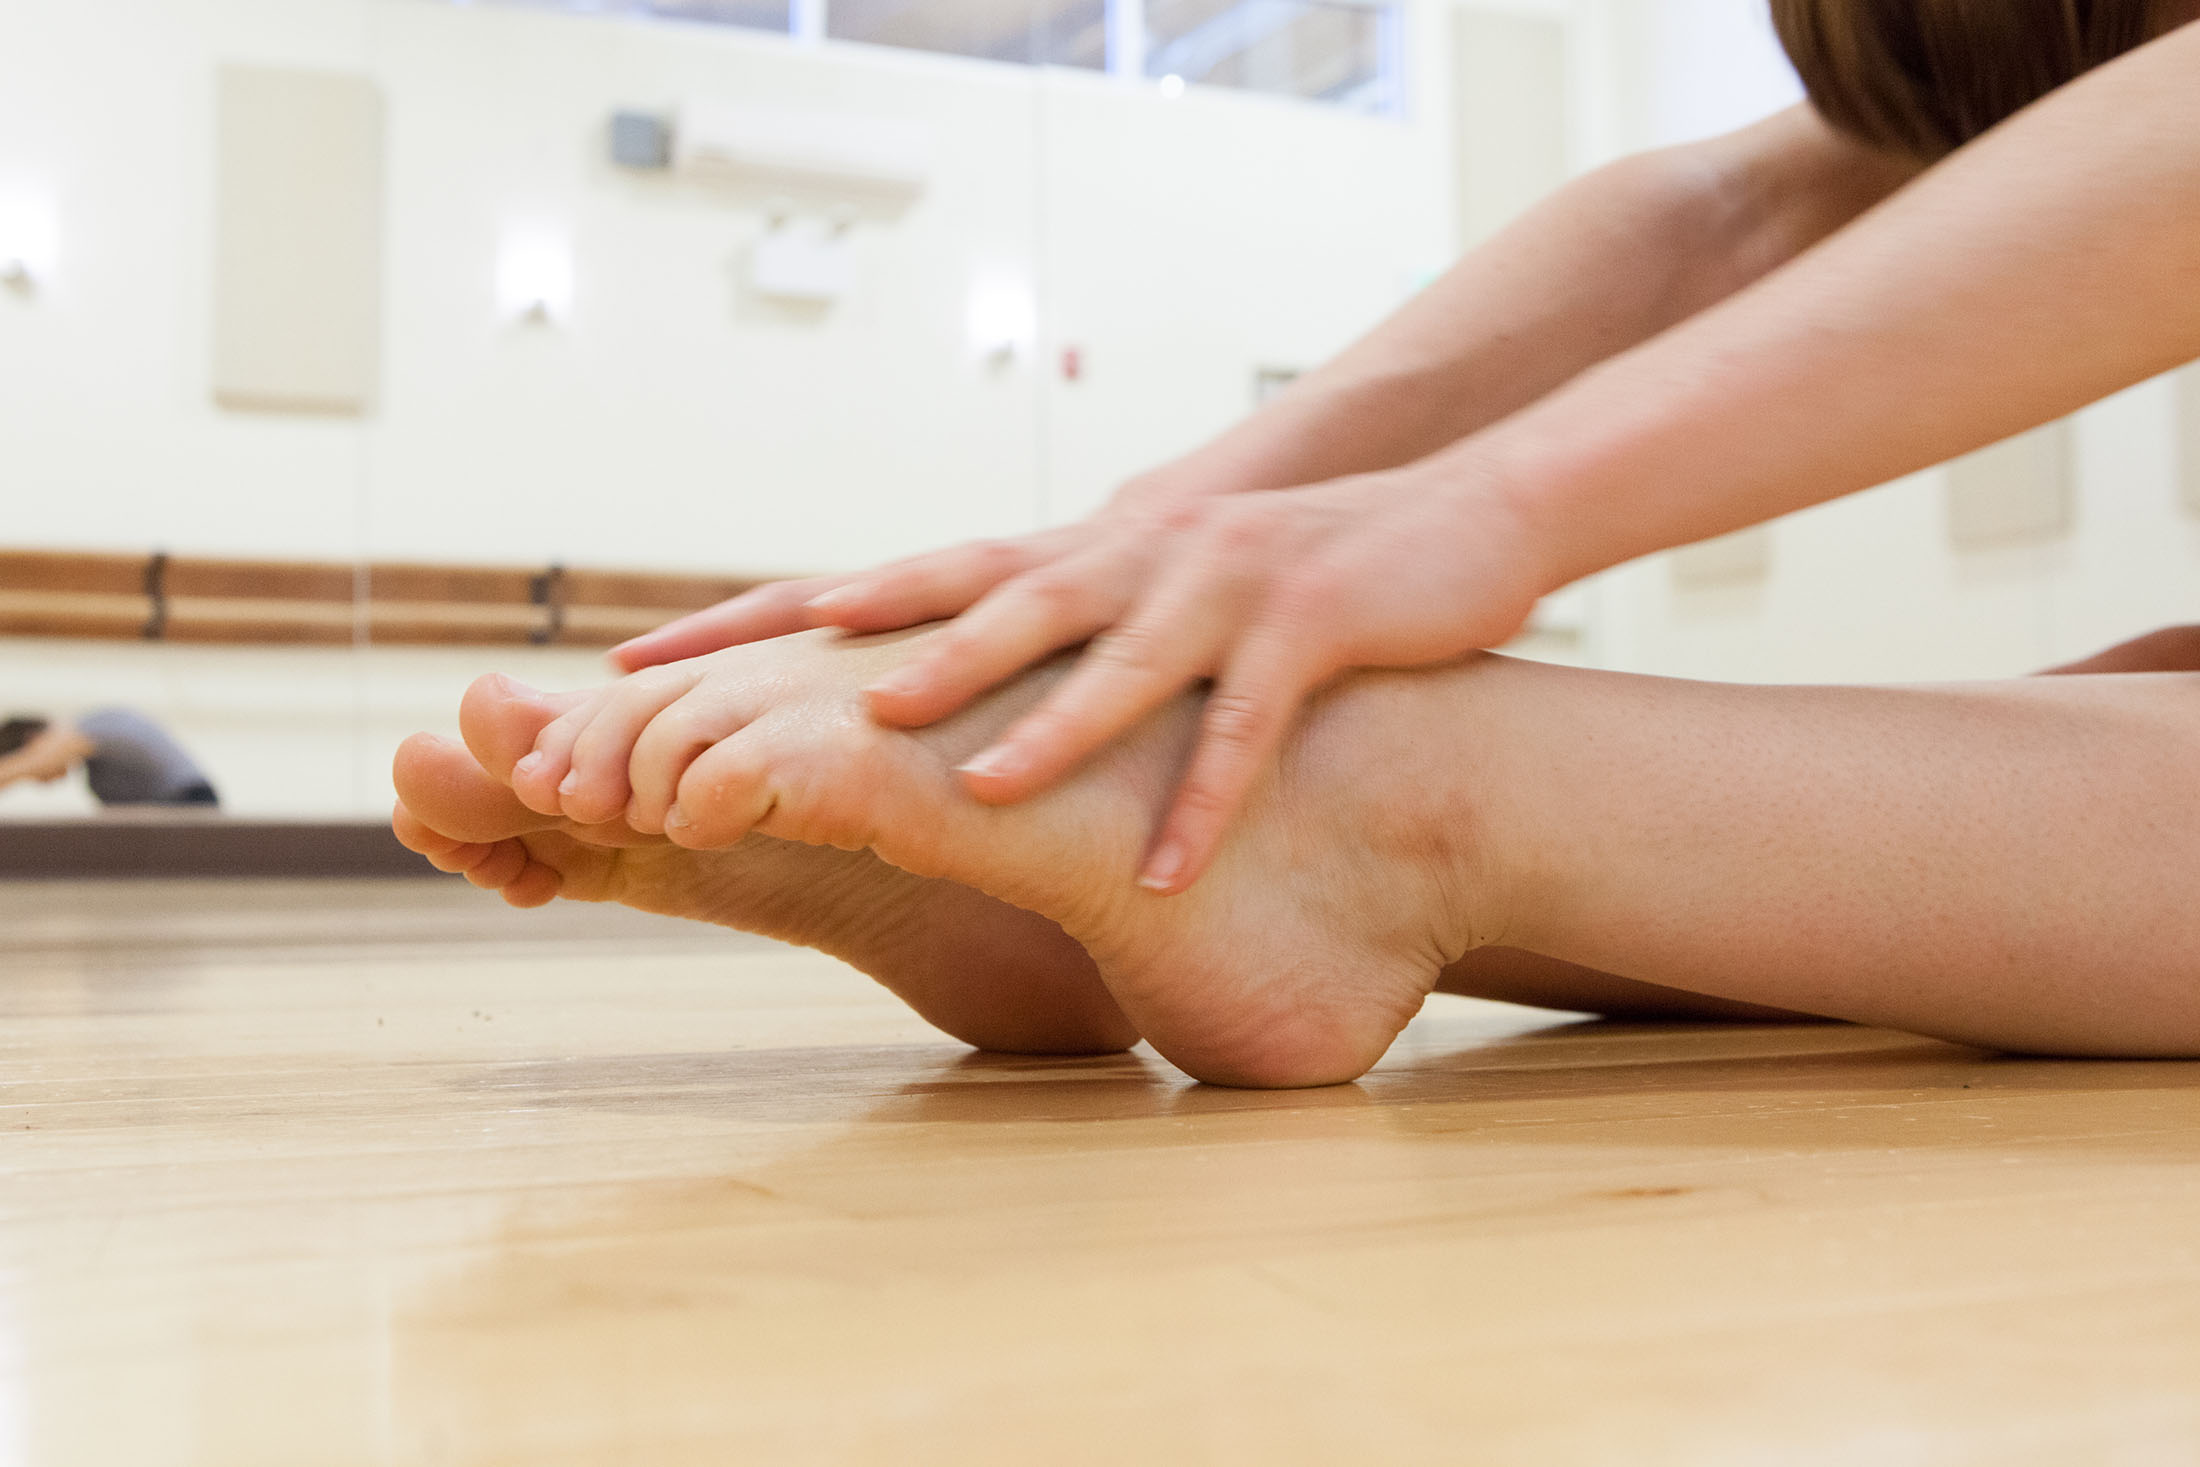 Close-up photograph of hands stretching out to bare feet in the performance workspace